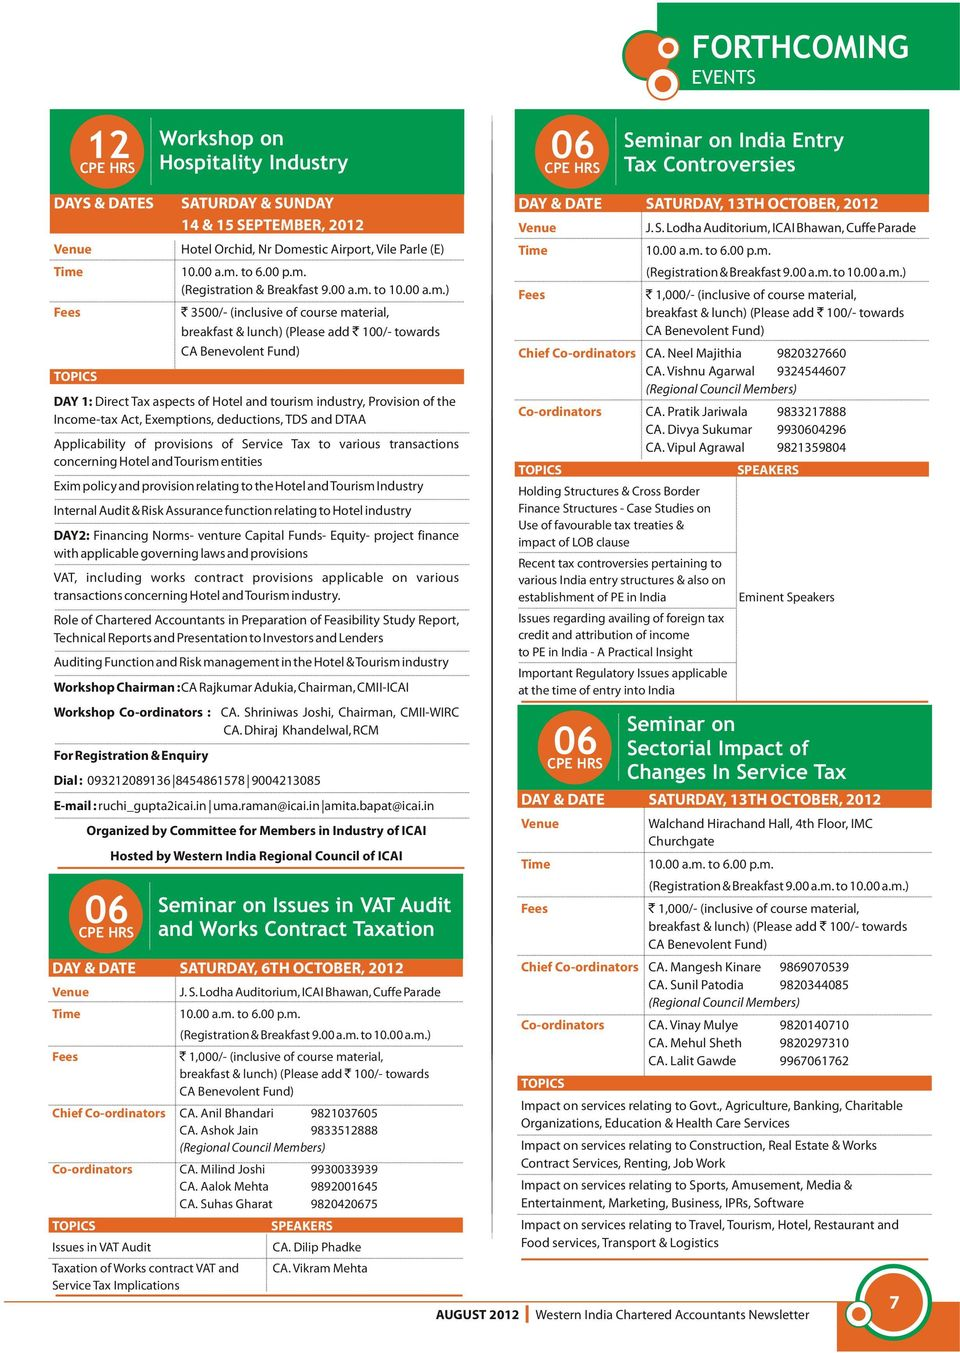 WESTERN INDIA CHARTERED ACCOUNTANTS NEWSLETTER - PDF